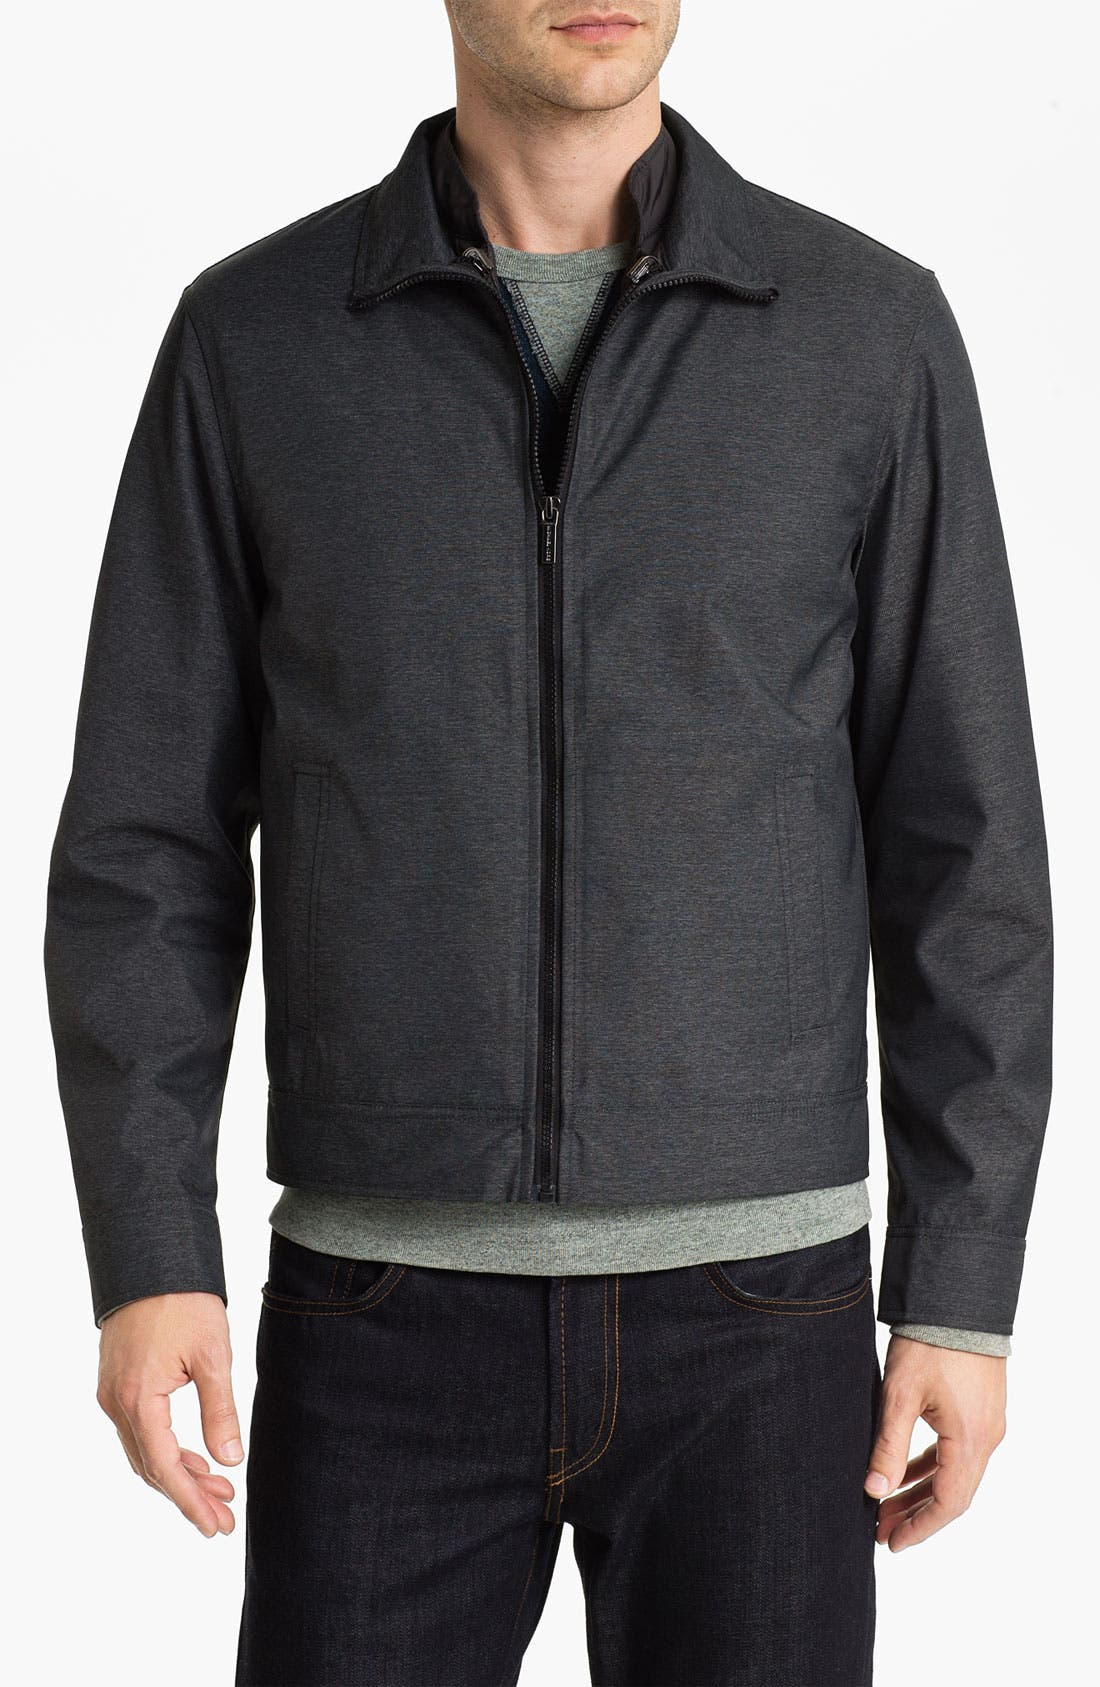 Main Image - Michael Kors 3-in-1 Mélange Twill Jacket (Online Exclusive)